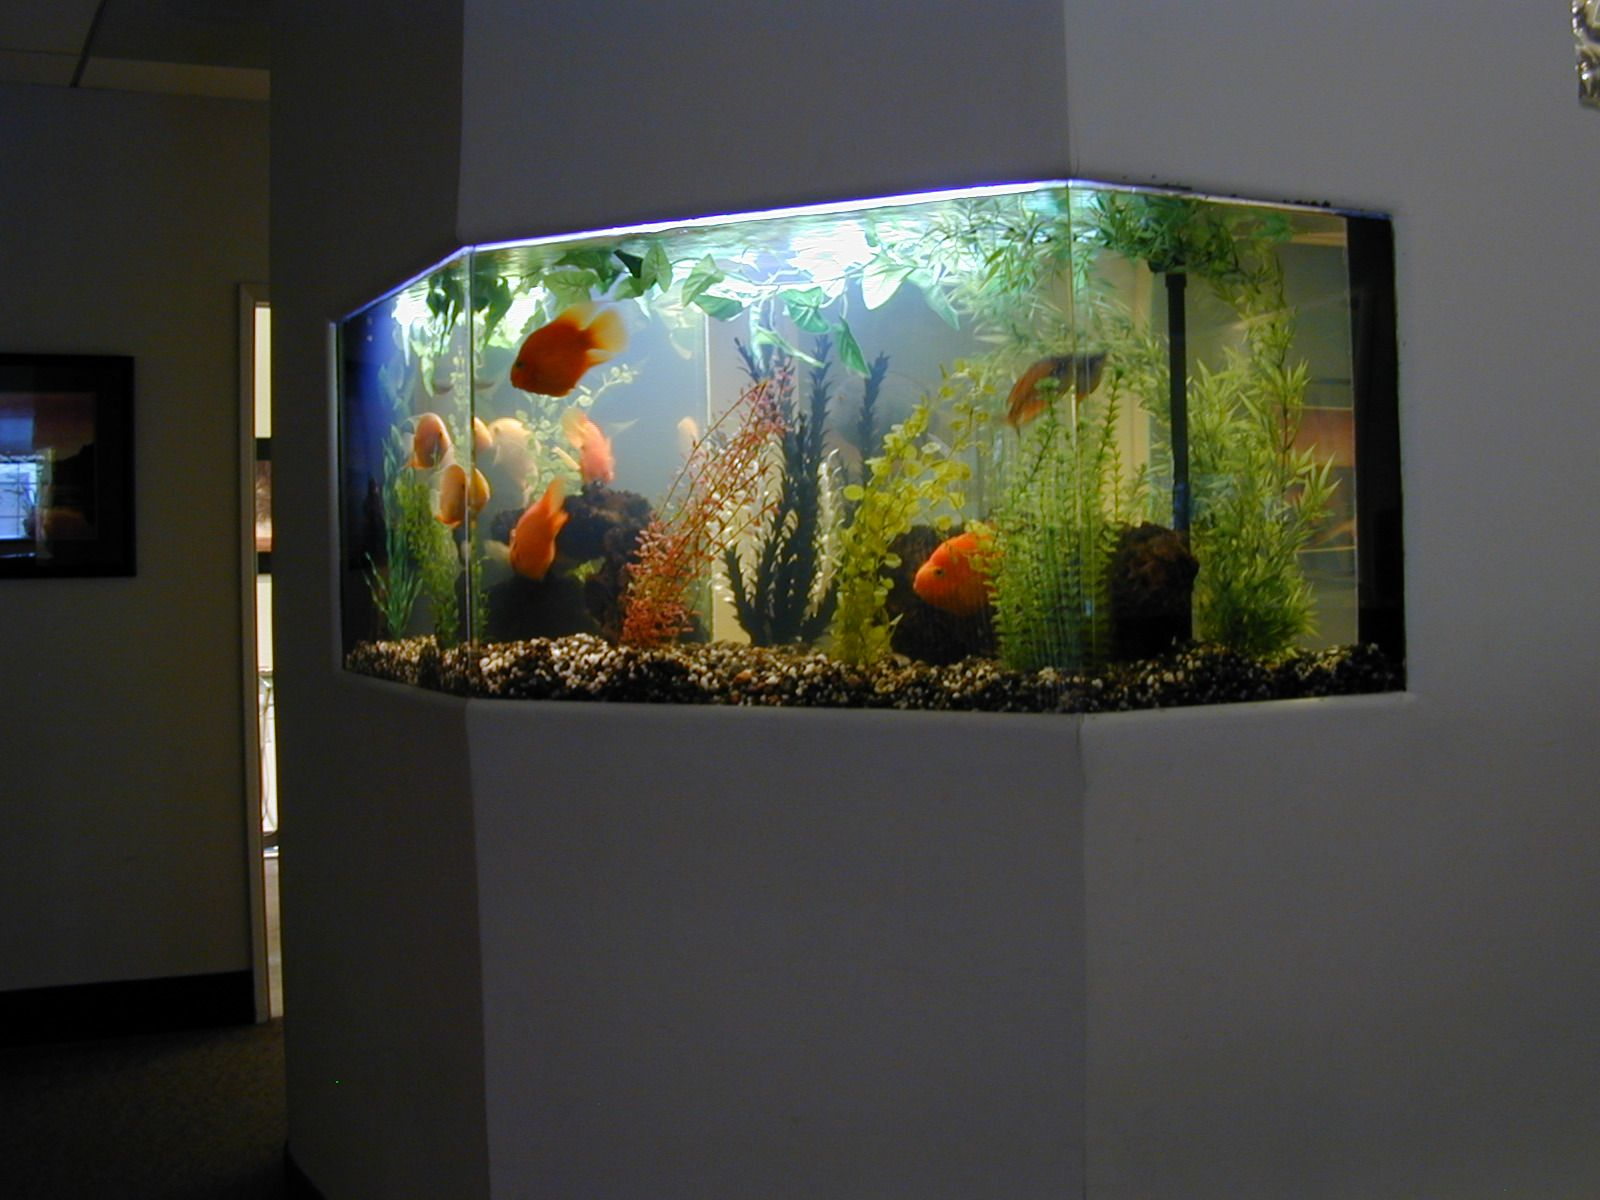 Fish aquarium in uae - If You Love Nature And Would Like To Include Aspects Of It In Your Home Then You Shhould Consider Acquiring A Fish Tank Aquariams Are Stylish And